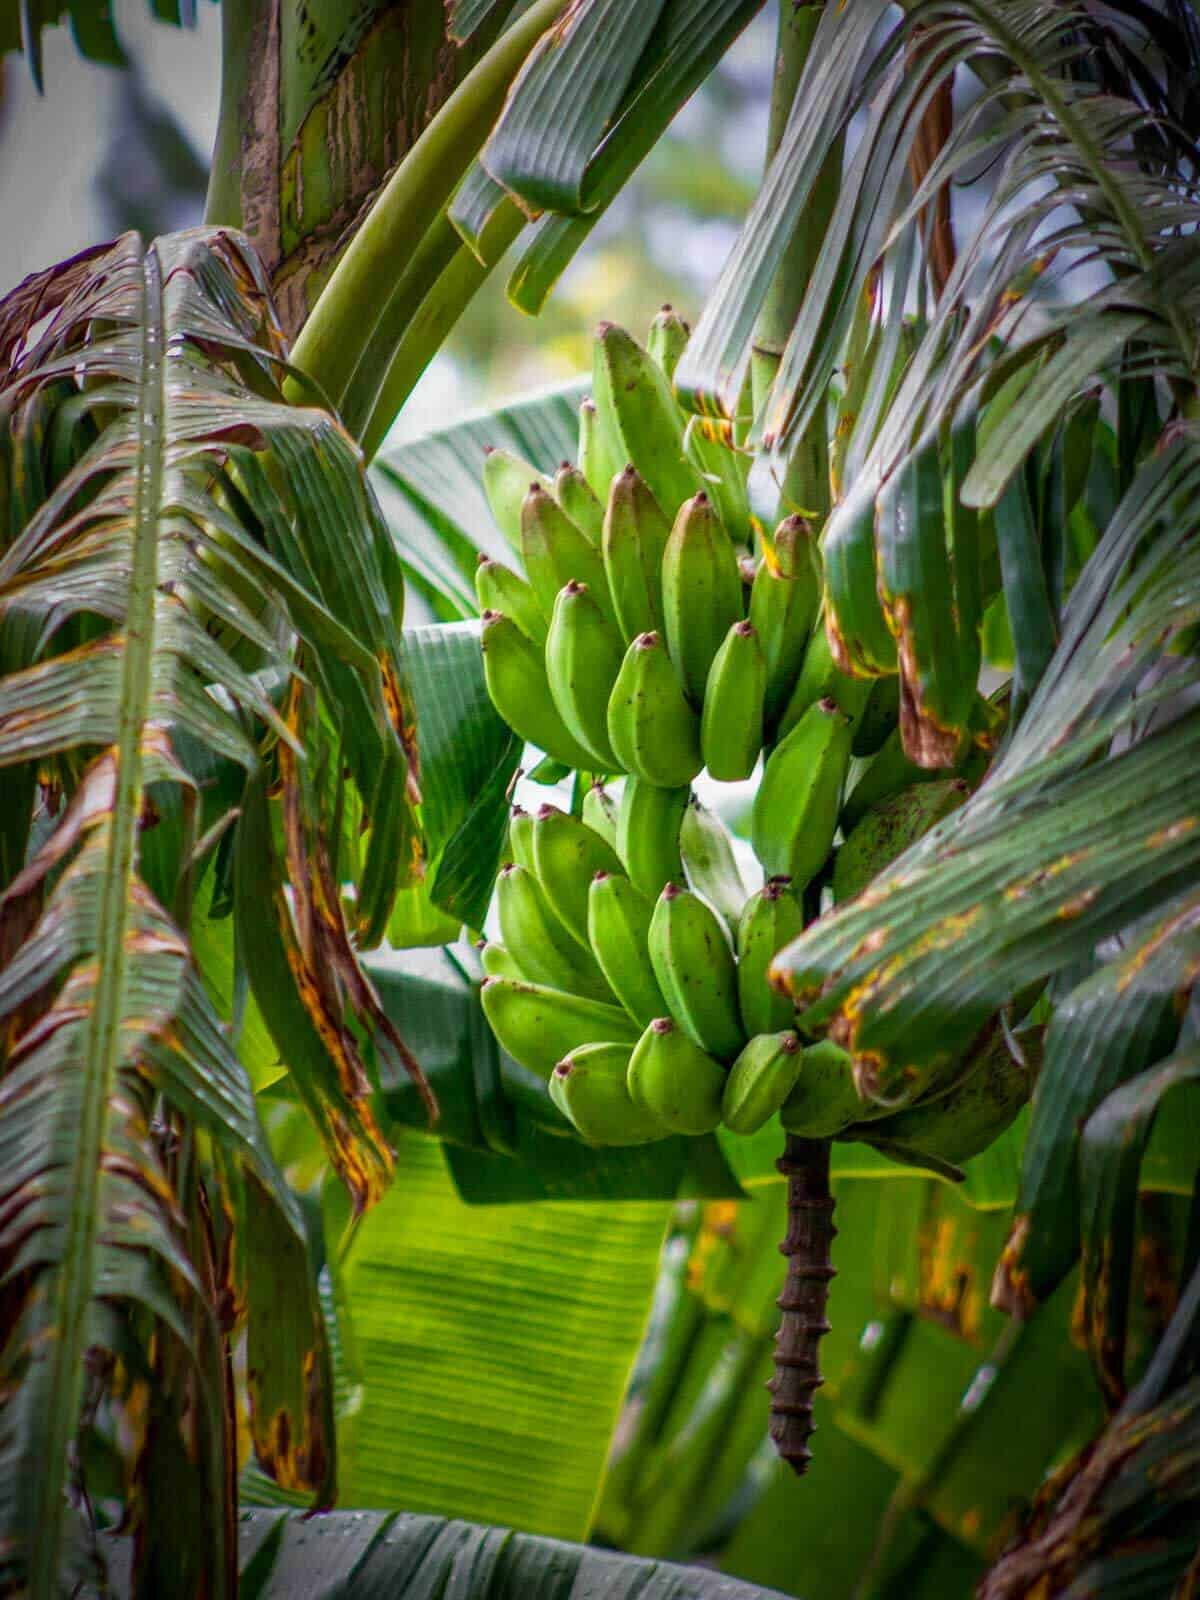 green plantains in their tree